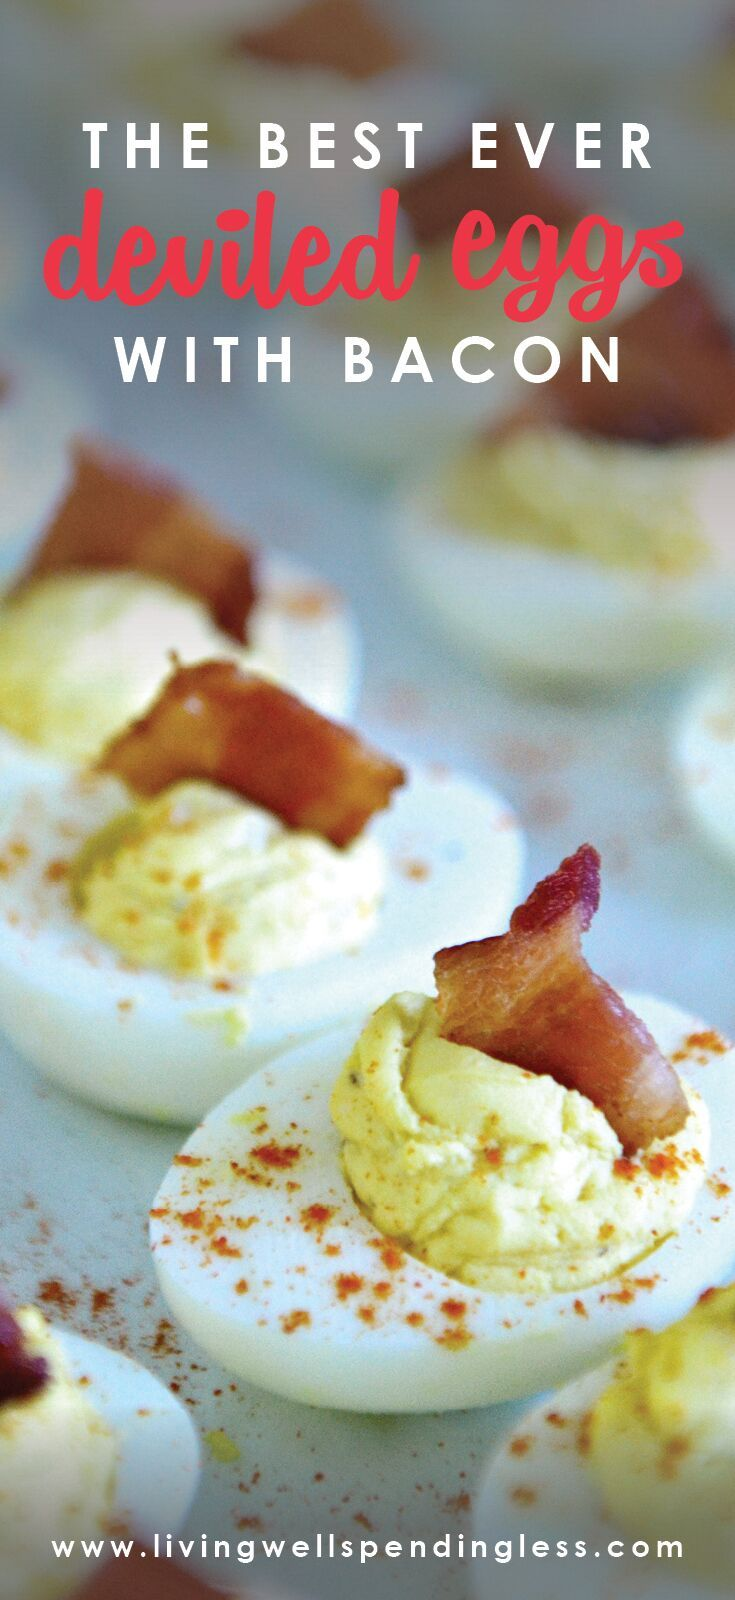 Deviled eggs with bacon pinterest easy deviled eggs devil and bacon these deviled eggs with bacon are a great party food or appetizer for the holidays or game day via lwsl recipe foodmadesimple appetizers forumfinder Choice Image